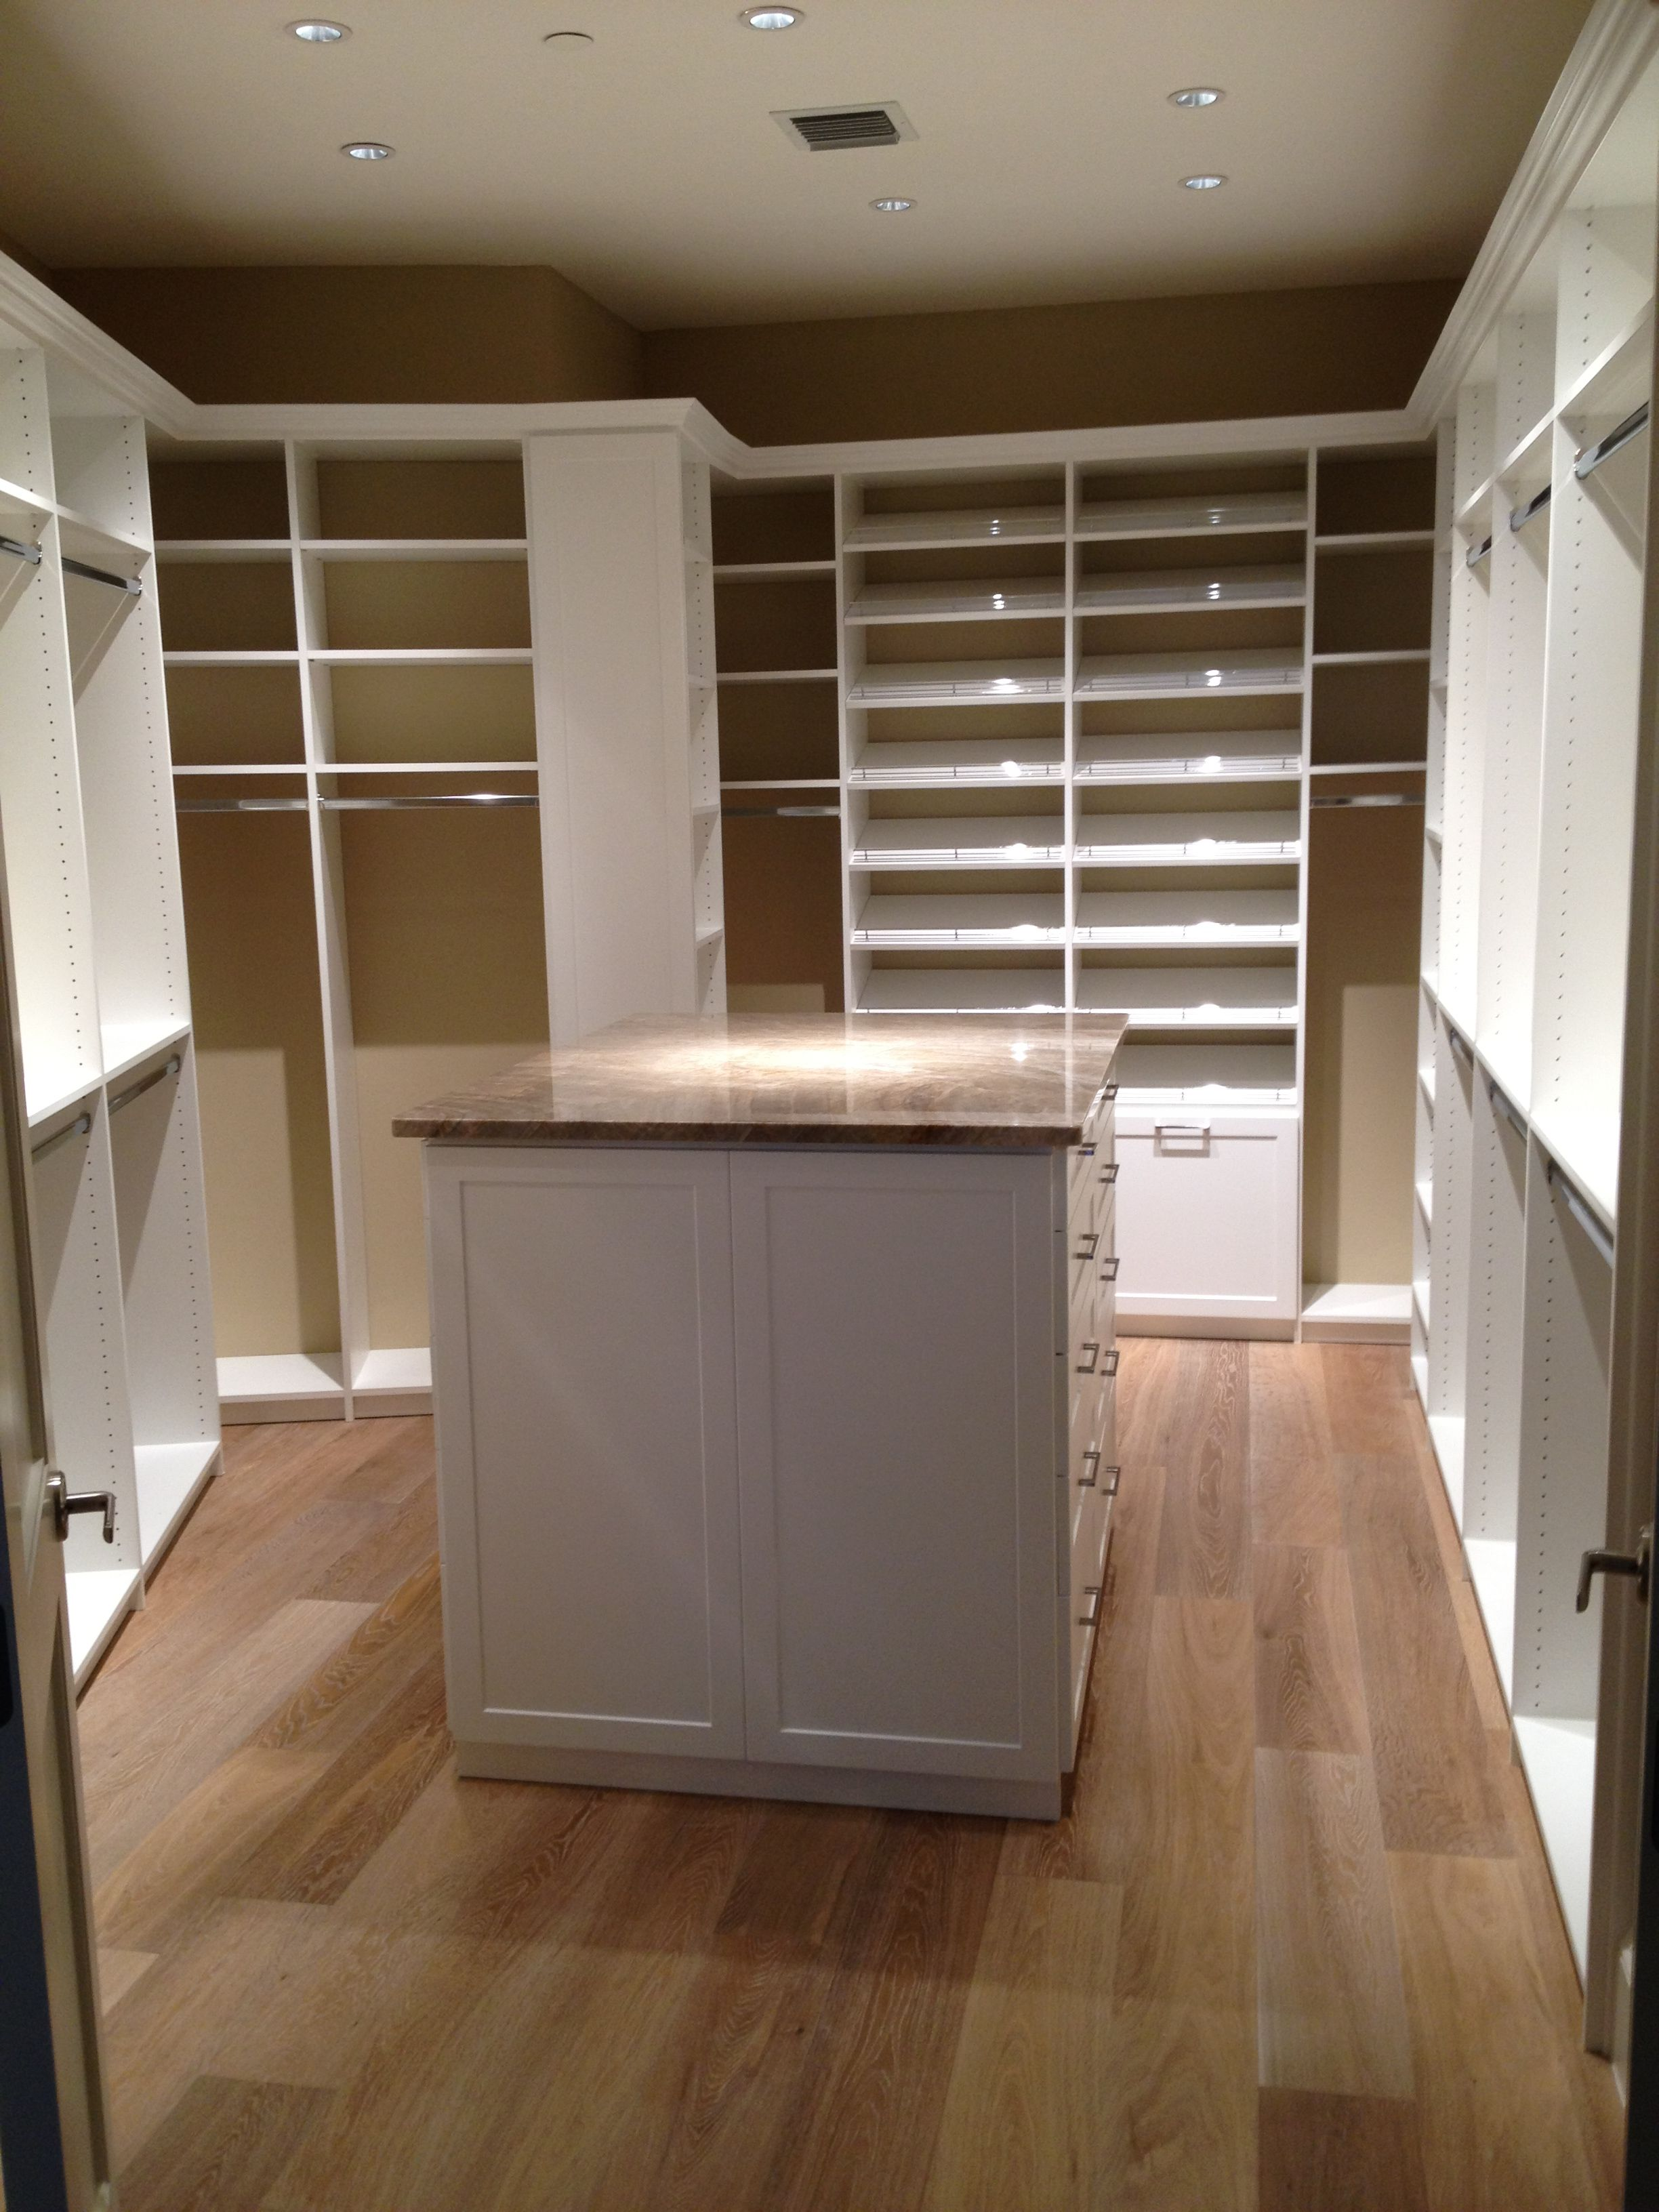 Delicieux Gorgeous Master Closet With Island